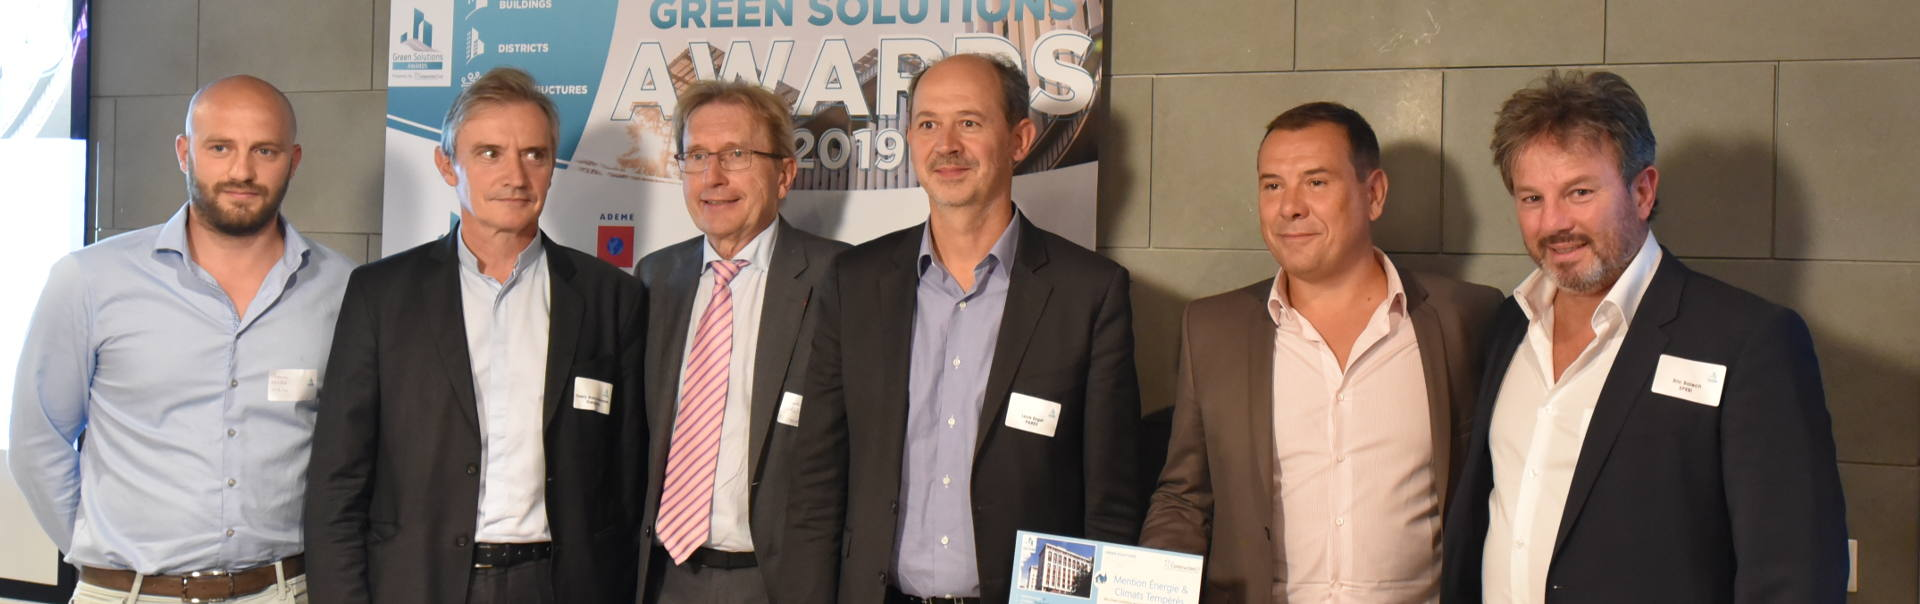 SPEBI primé aux Green Solutions Awards